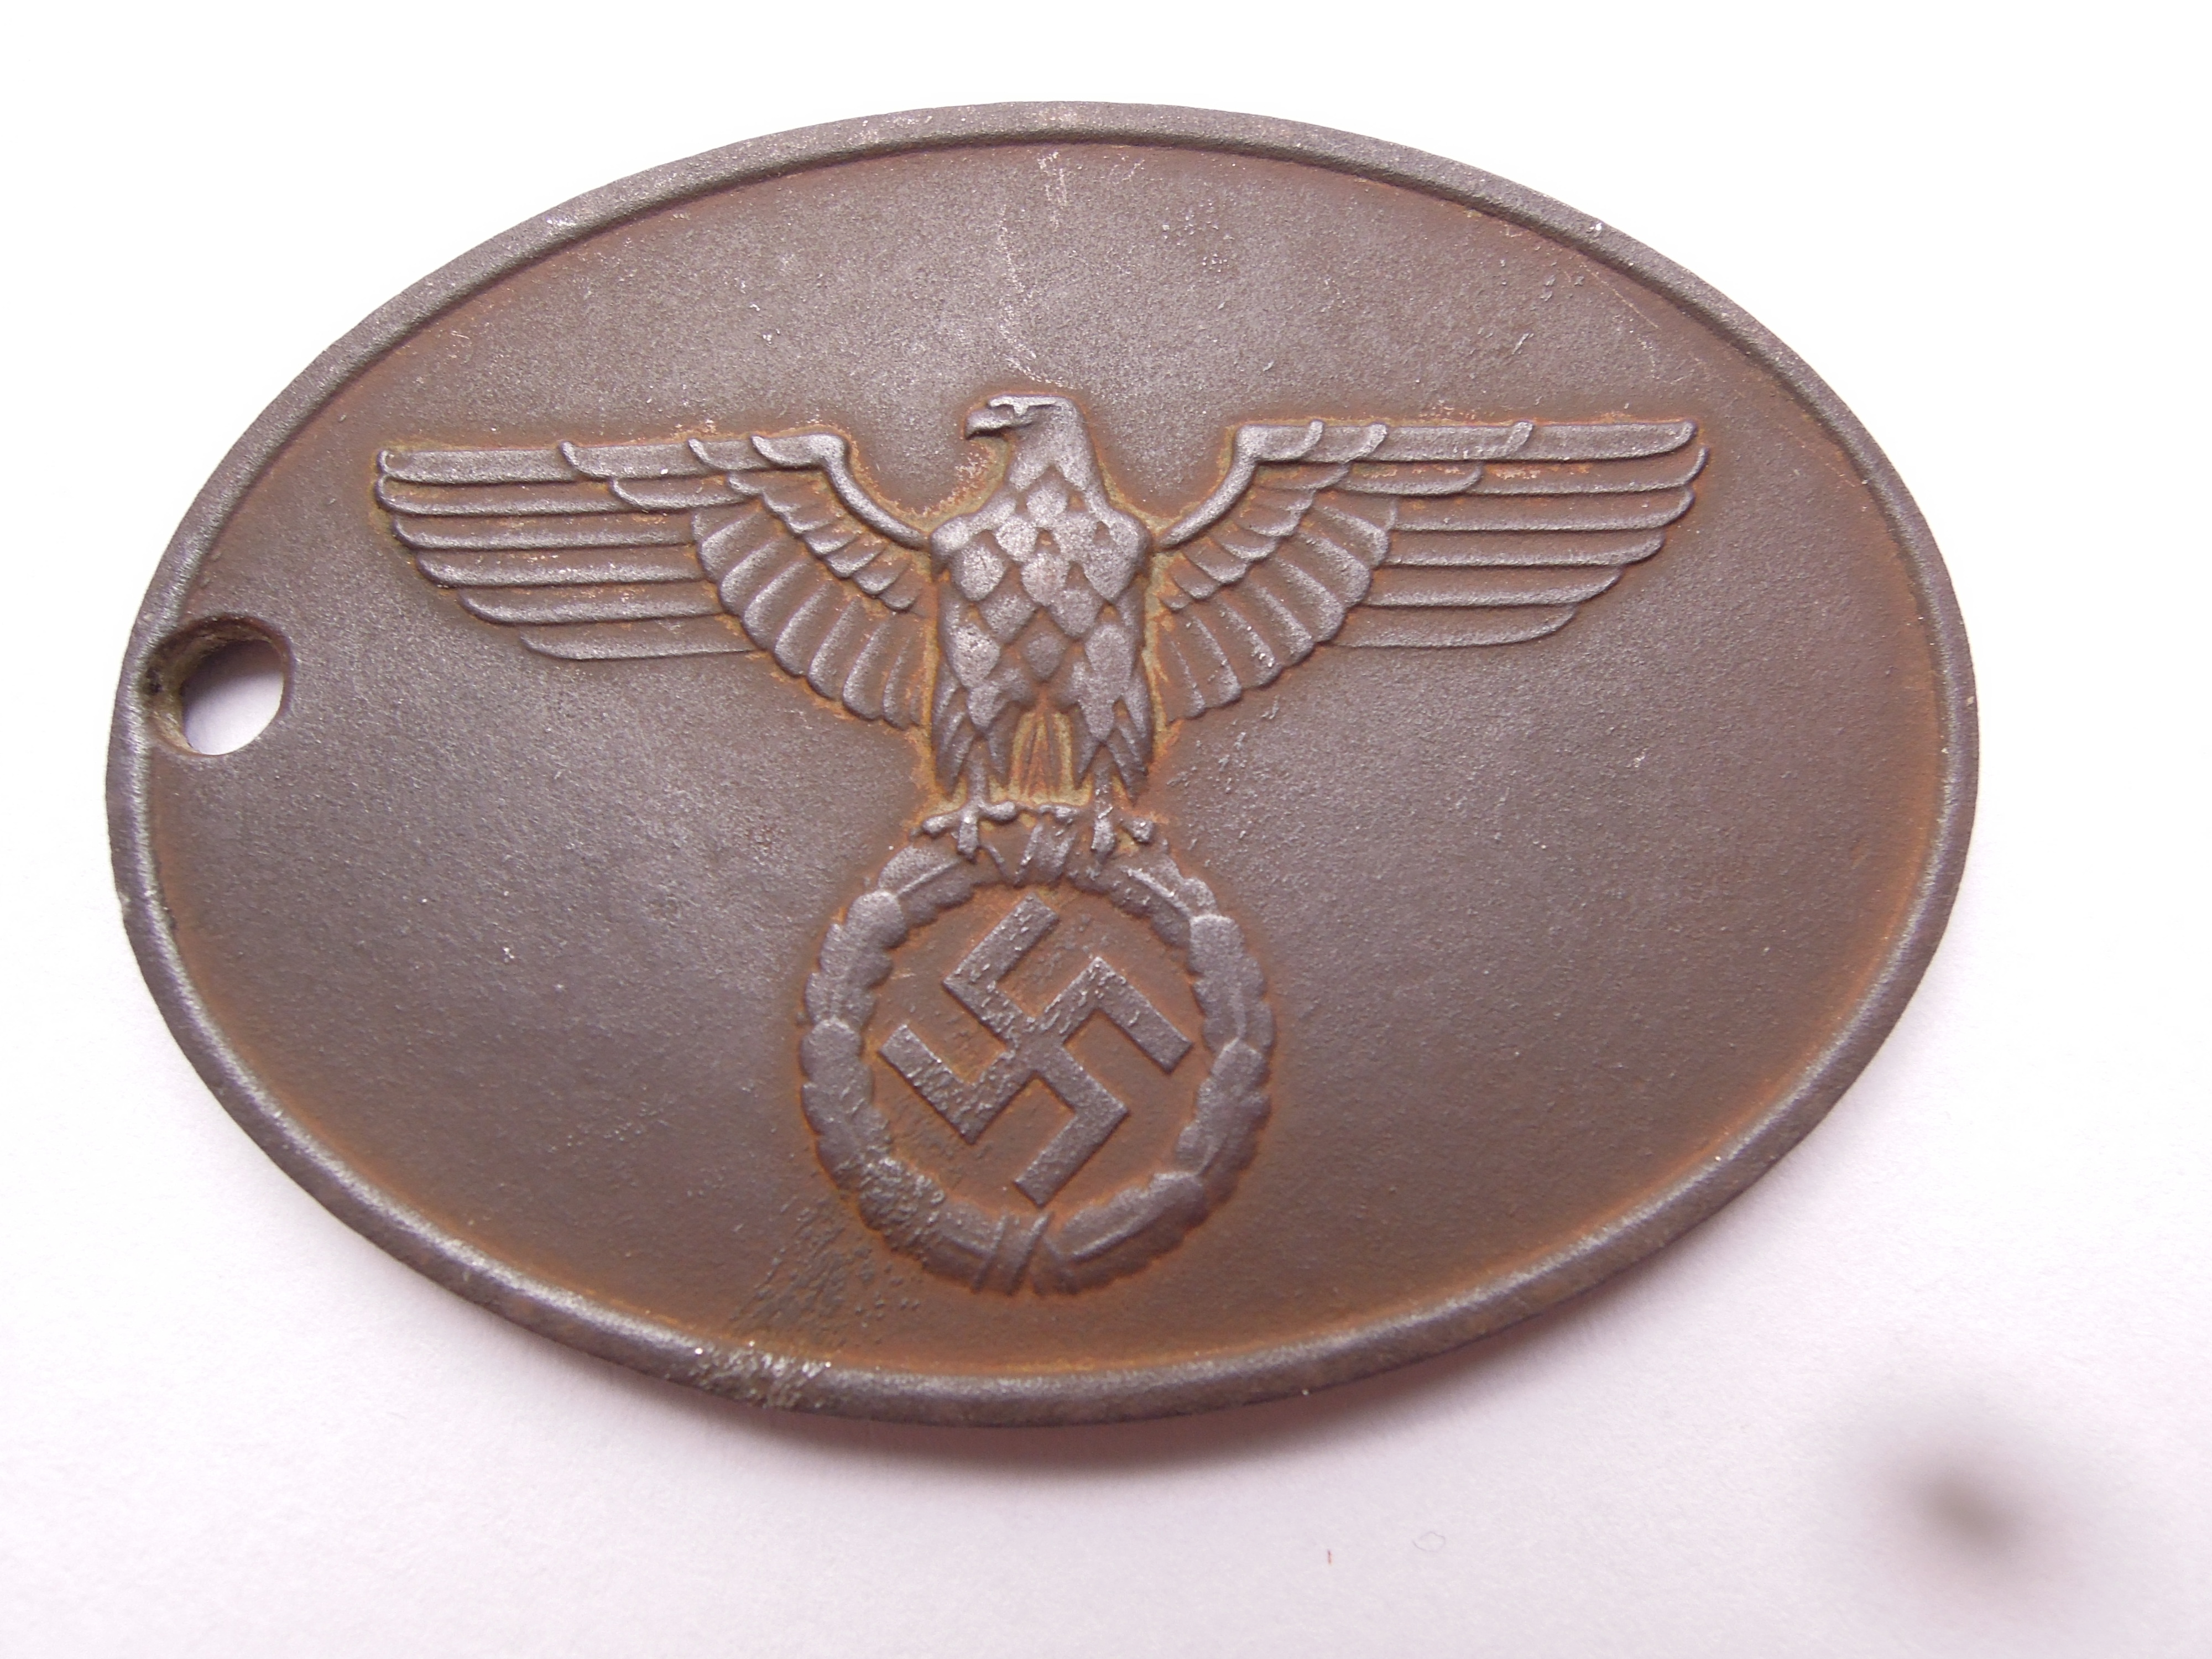 GROUND DUG GESTAPO WARRANT DISC no. 9135